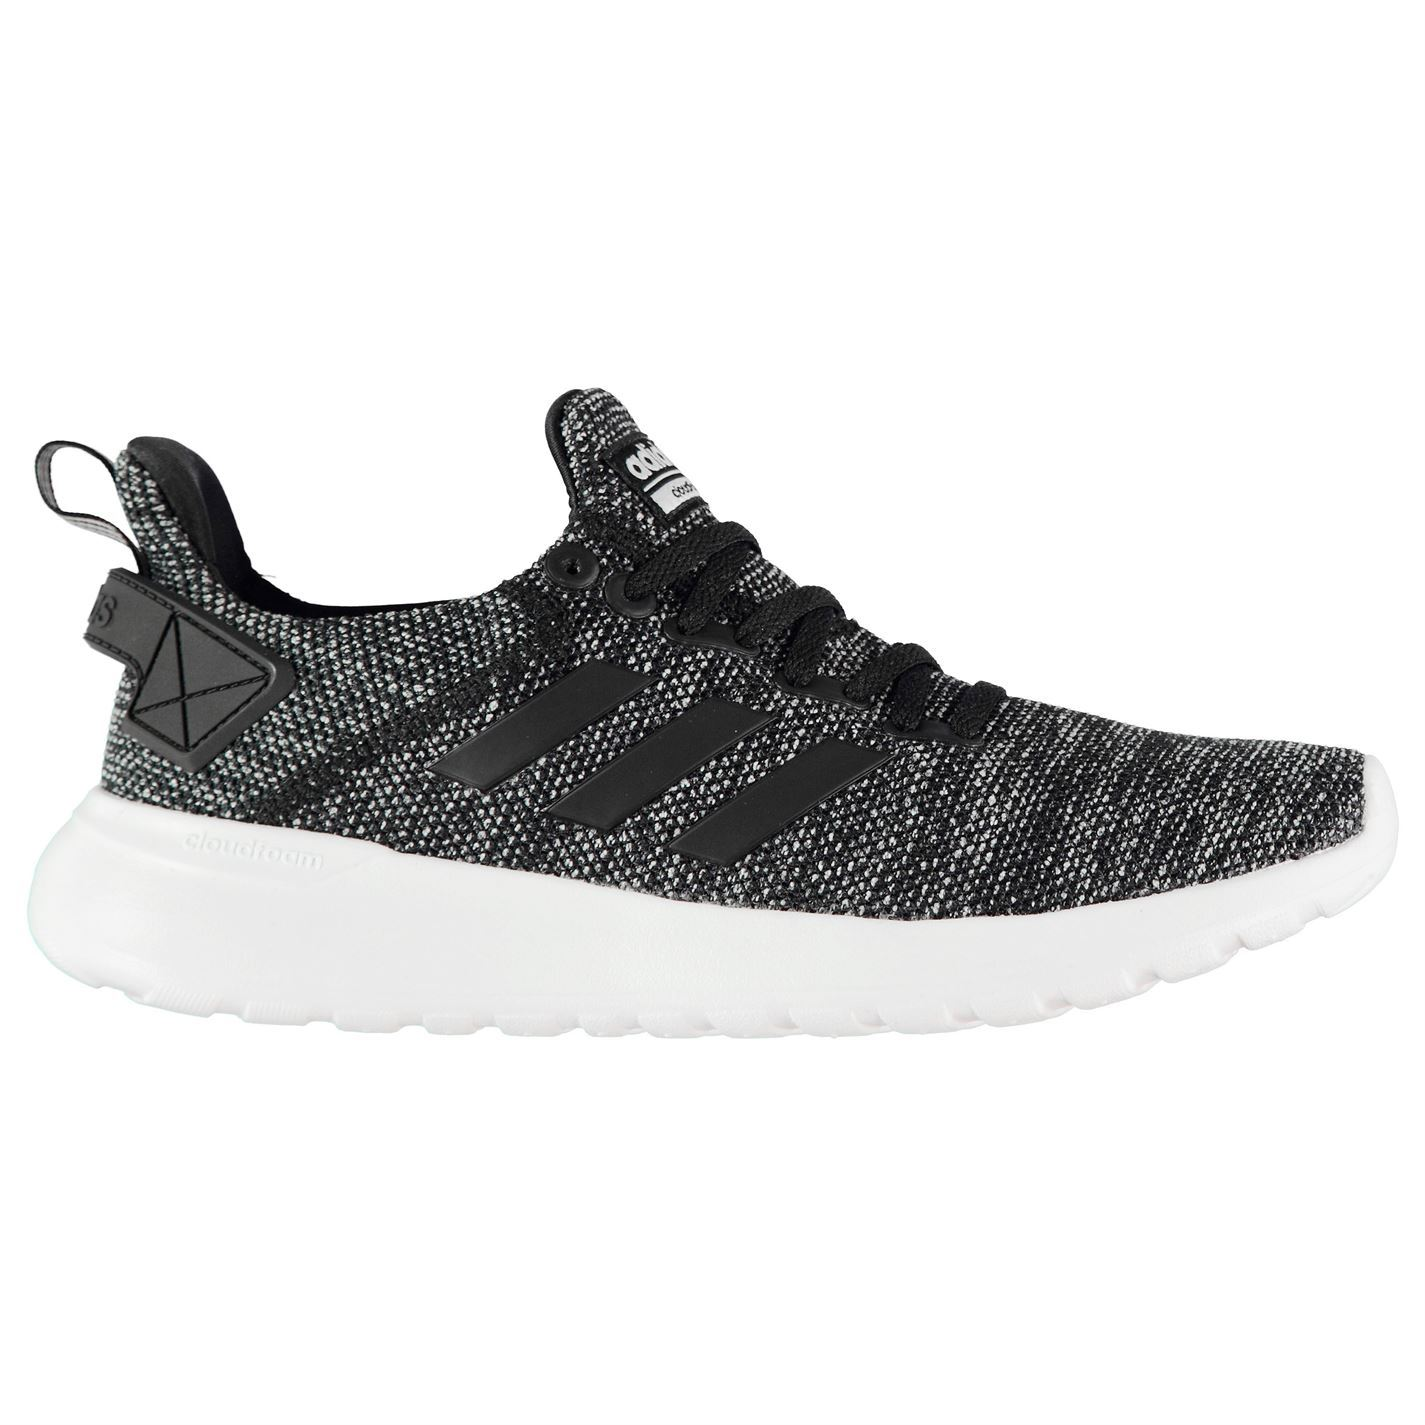 the best attitude b95aa a0af8 adidas Cloudfoam Lite Racer BYD Trainers Mens Black White Sports Shoes  Sneakers